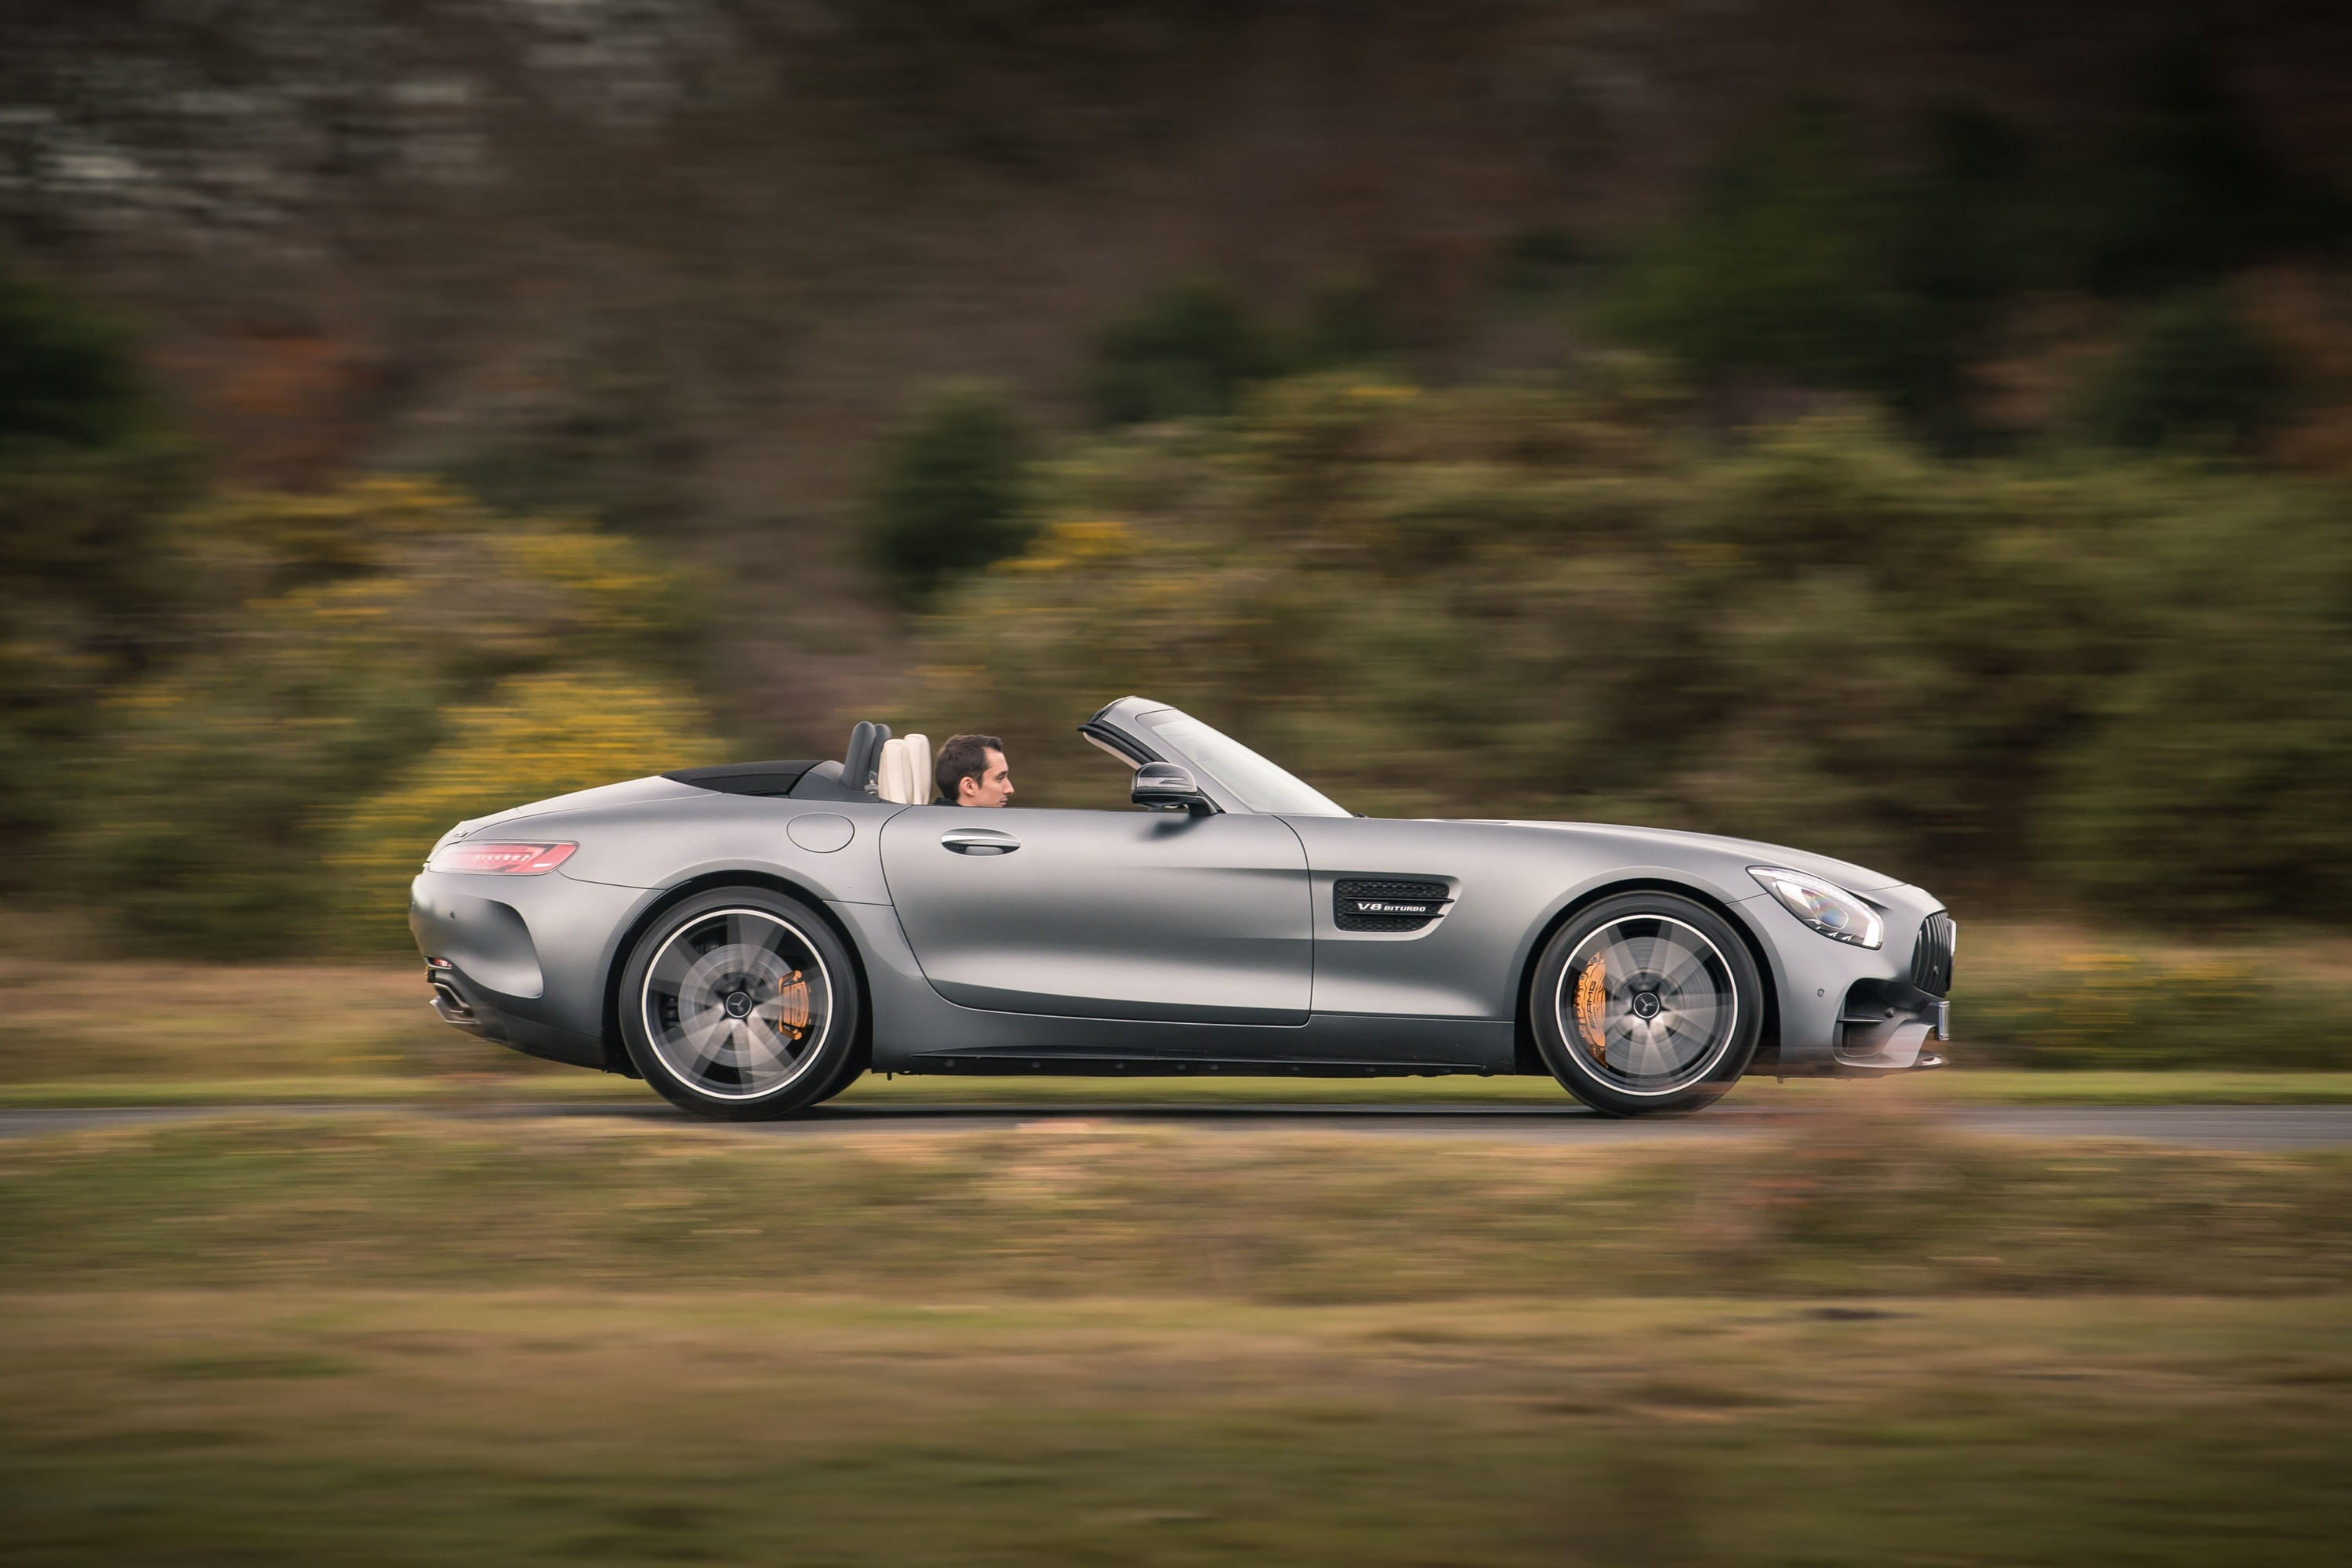 Mercedes-AMG GT C Roadster driving on the road